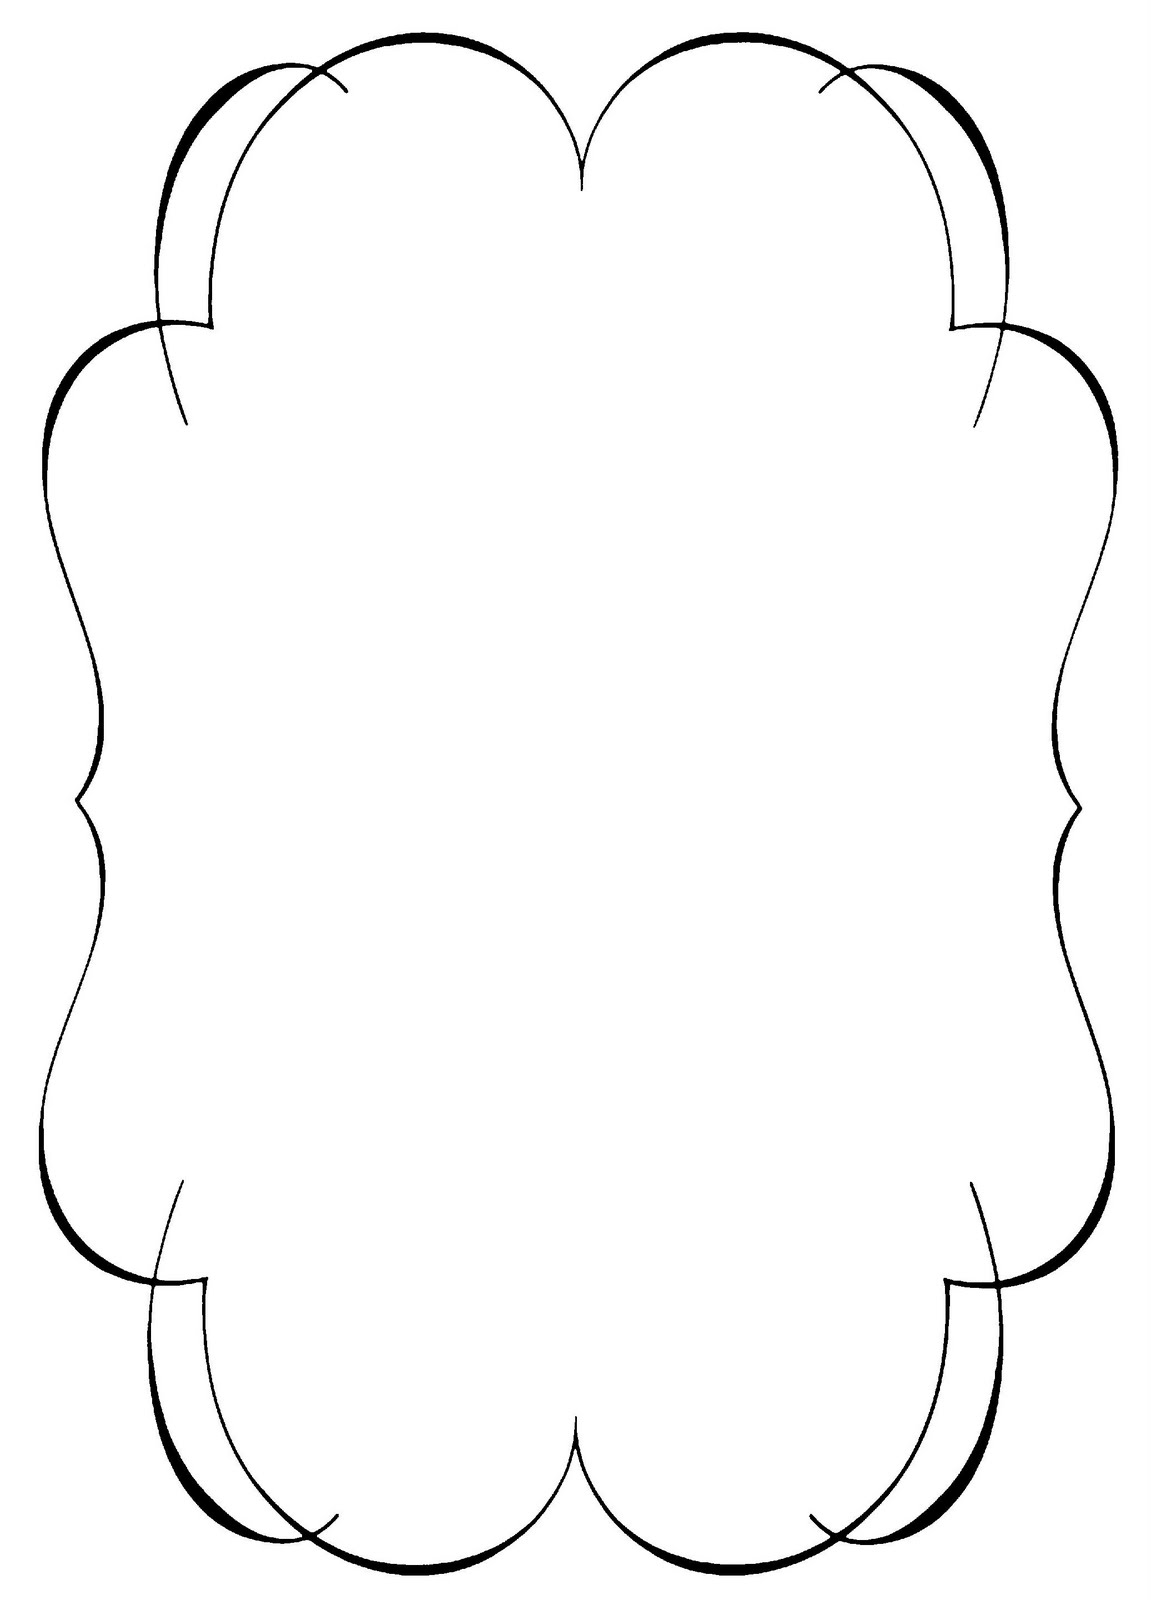 Simple Corner Borders Clip Ar - Free Clip Art Borders And Frames